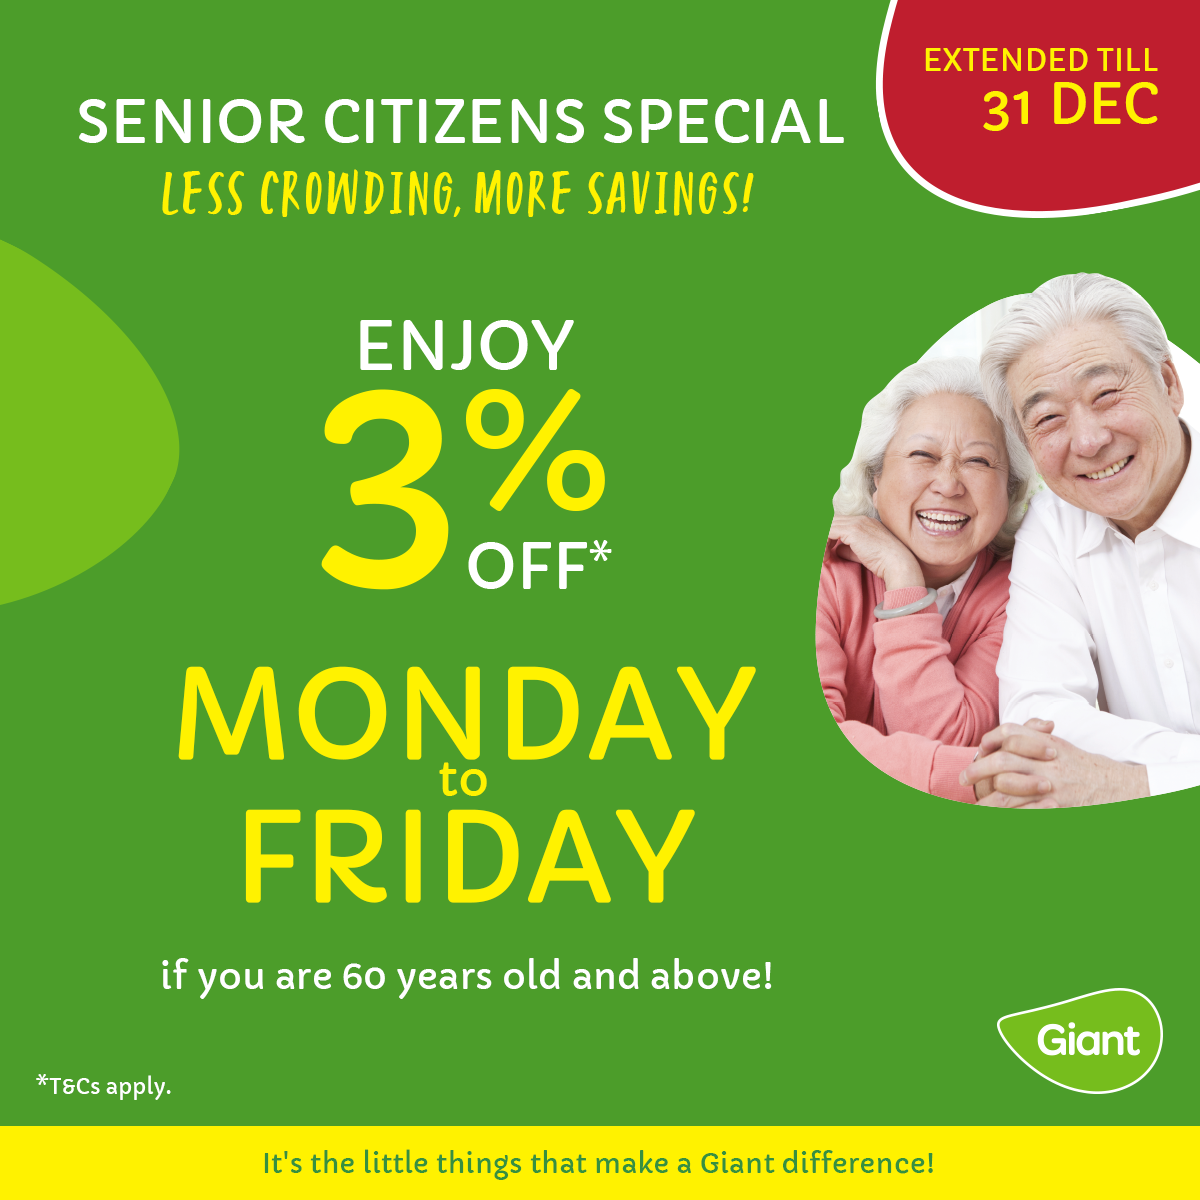 Senior citizens to enjoy 3% off groceries on weekdays as Giant S'pore extends discount till 31 Dec 2021